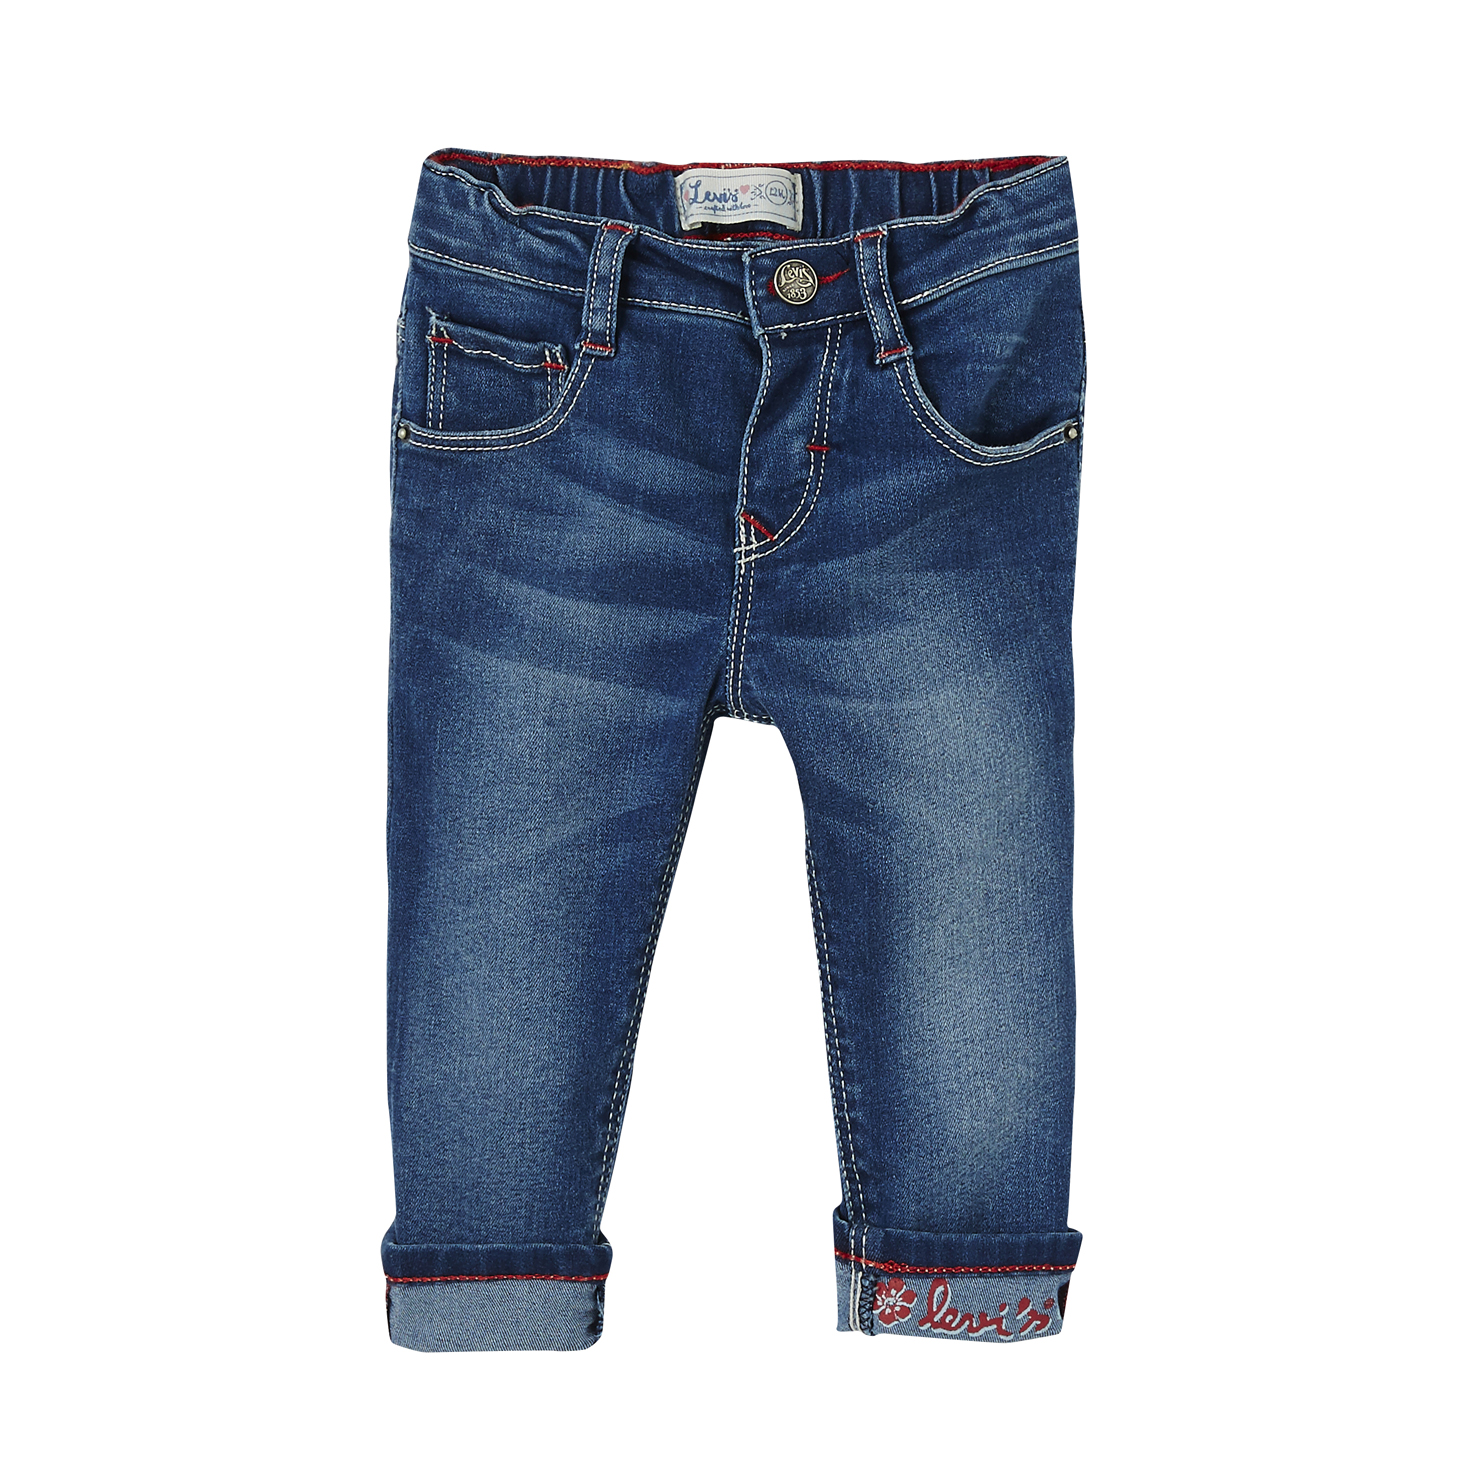 Levis Jeans Pant Mary in New! | Froschku00f6nig Onlineshop